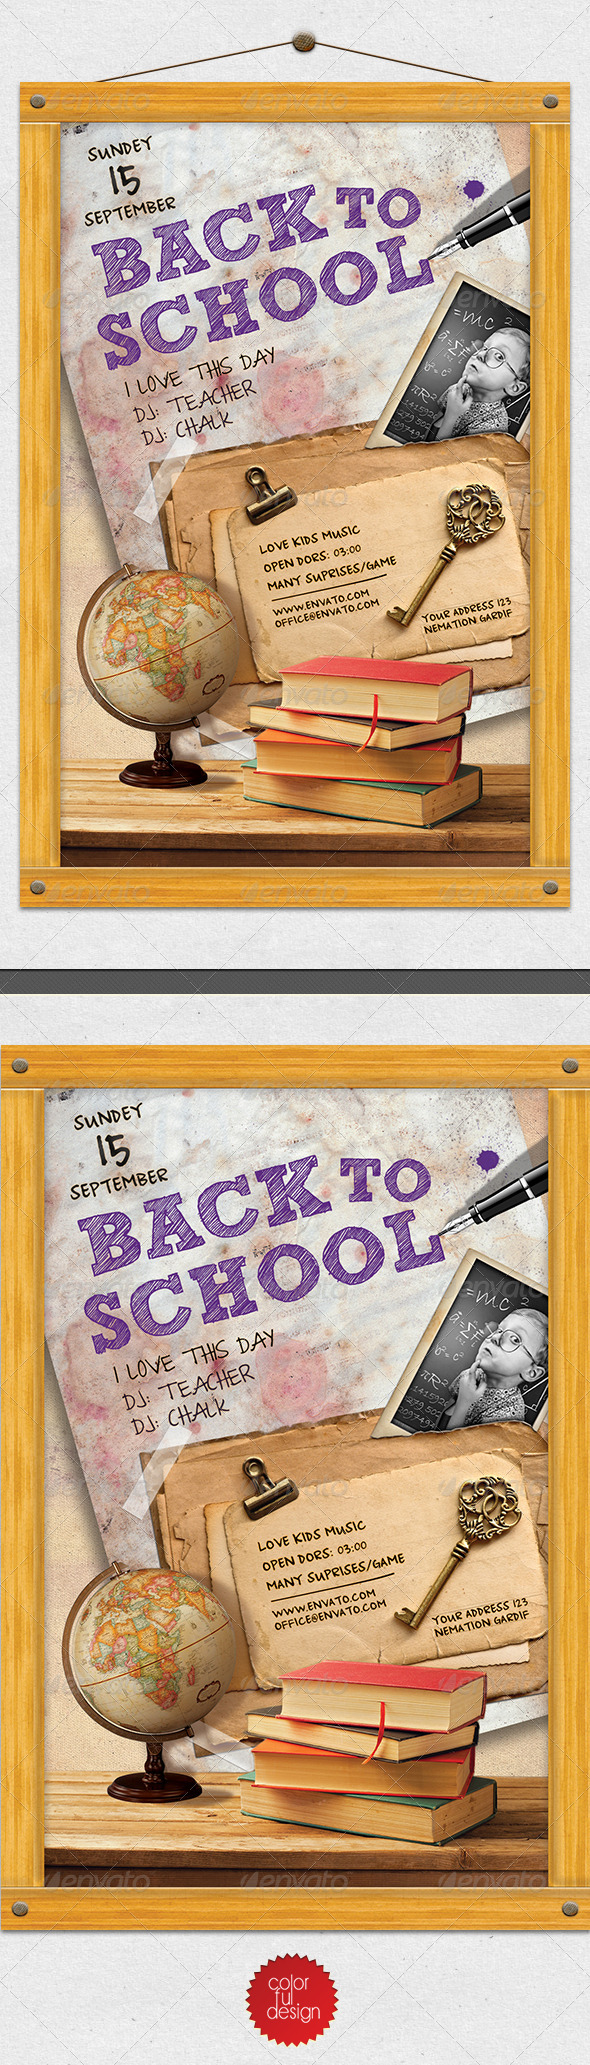 GraphicRiver Back To School Flyer Template 8509279